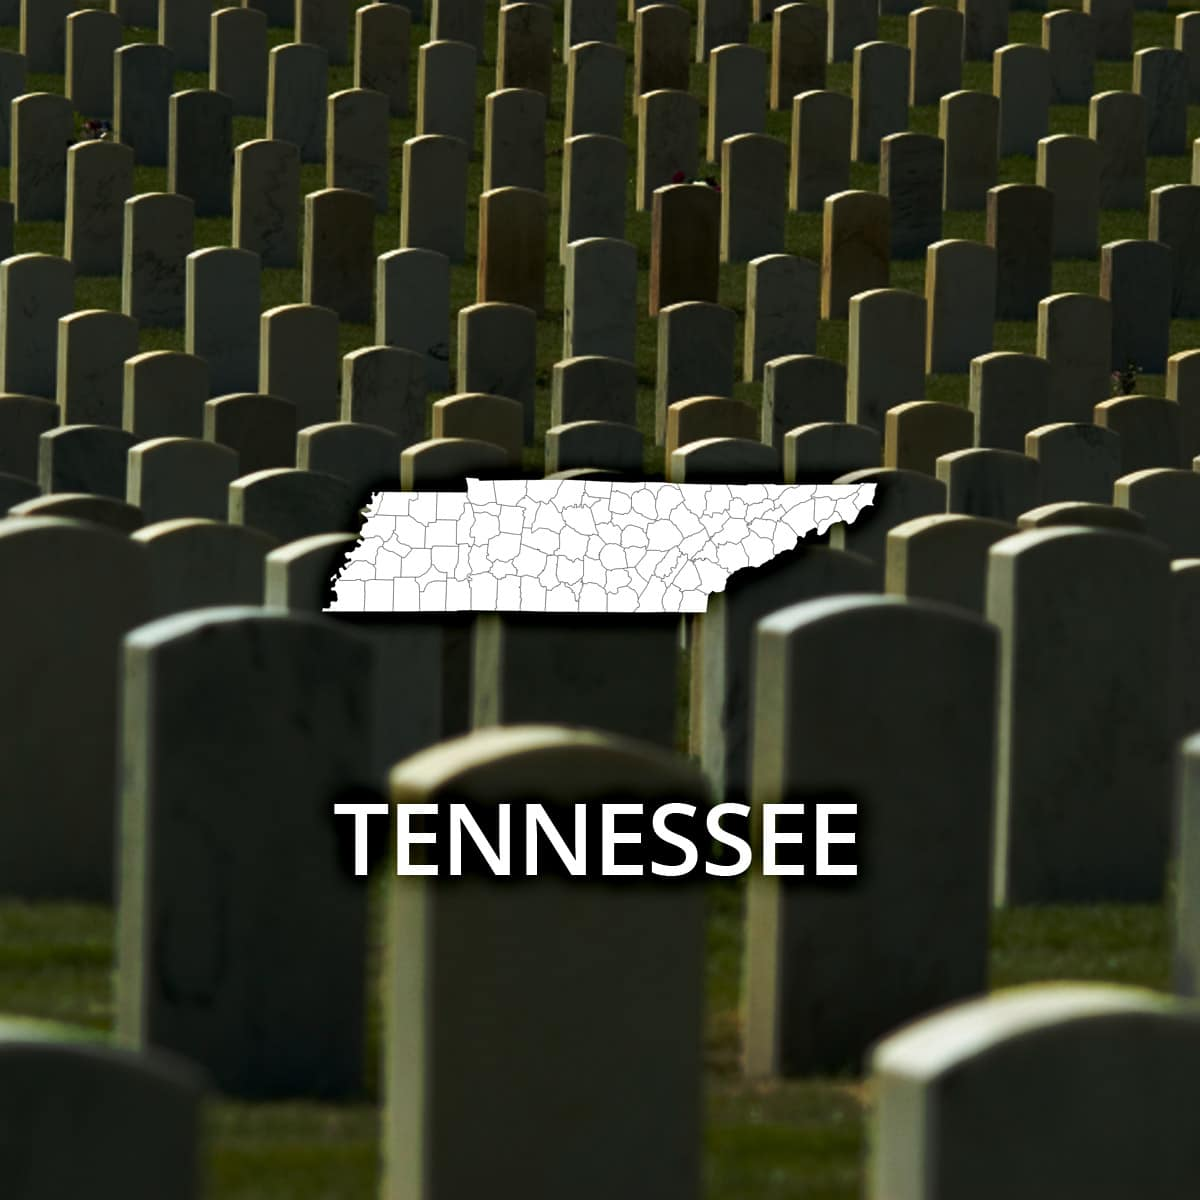 Where to Obtain a Tennessee Death Certificate